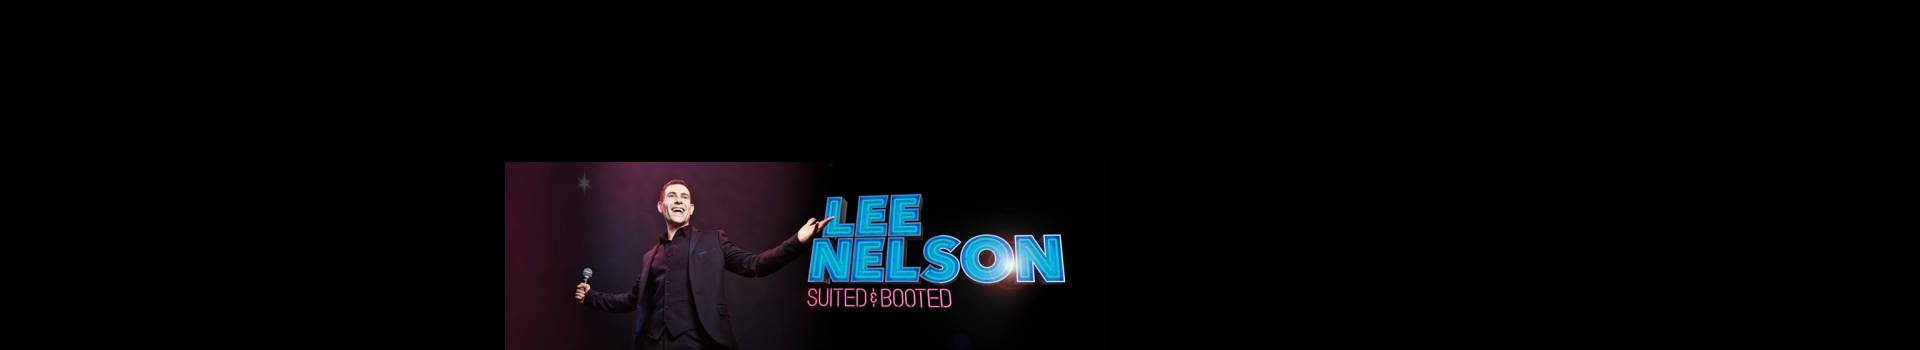 Lee Nelson: Suited And Booted tickets London